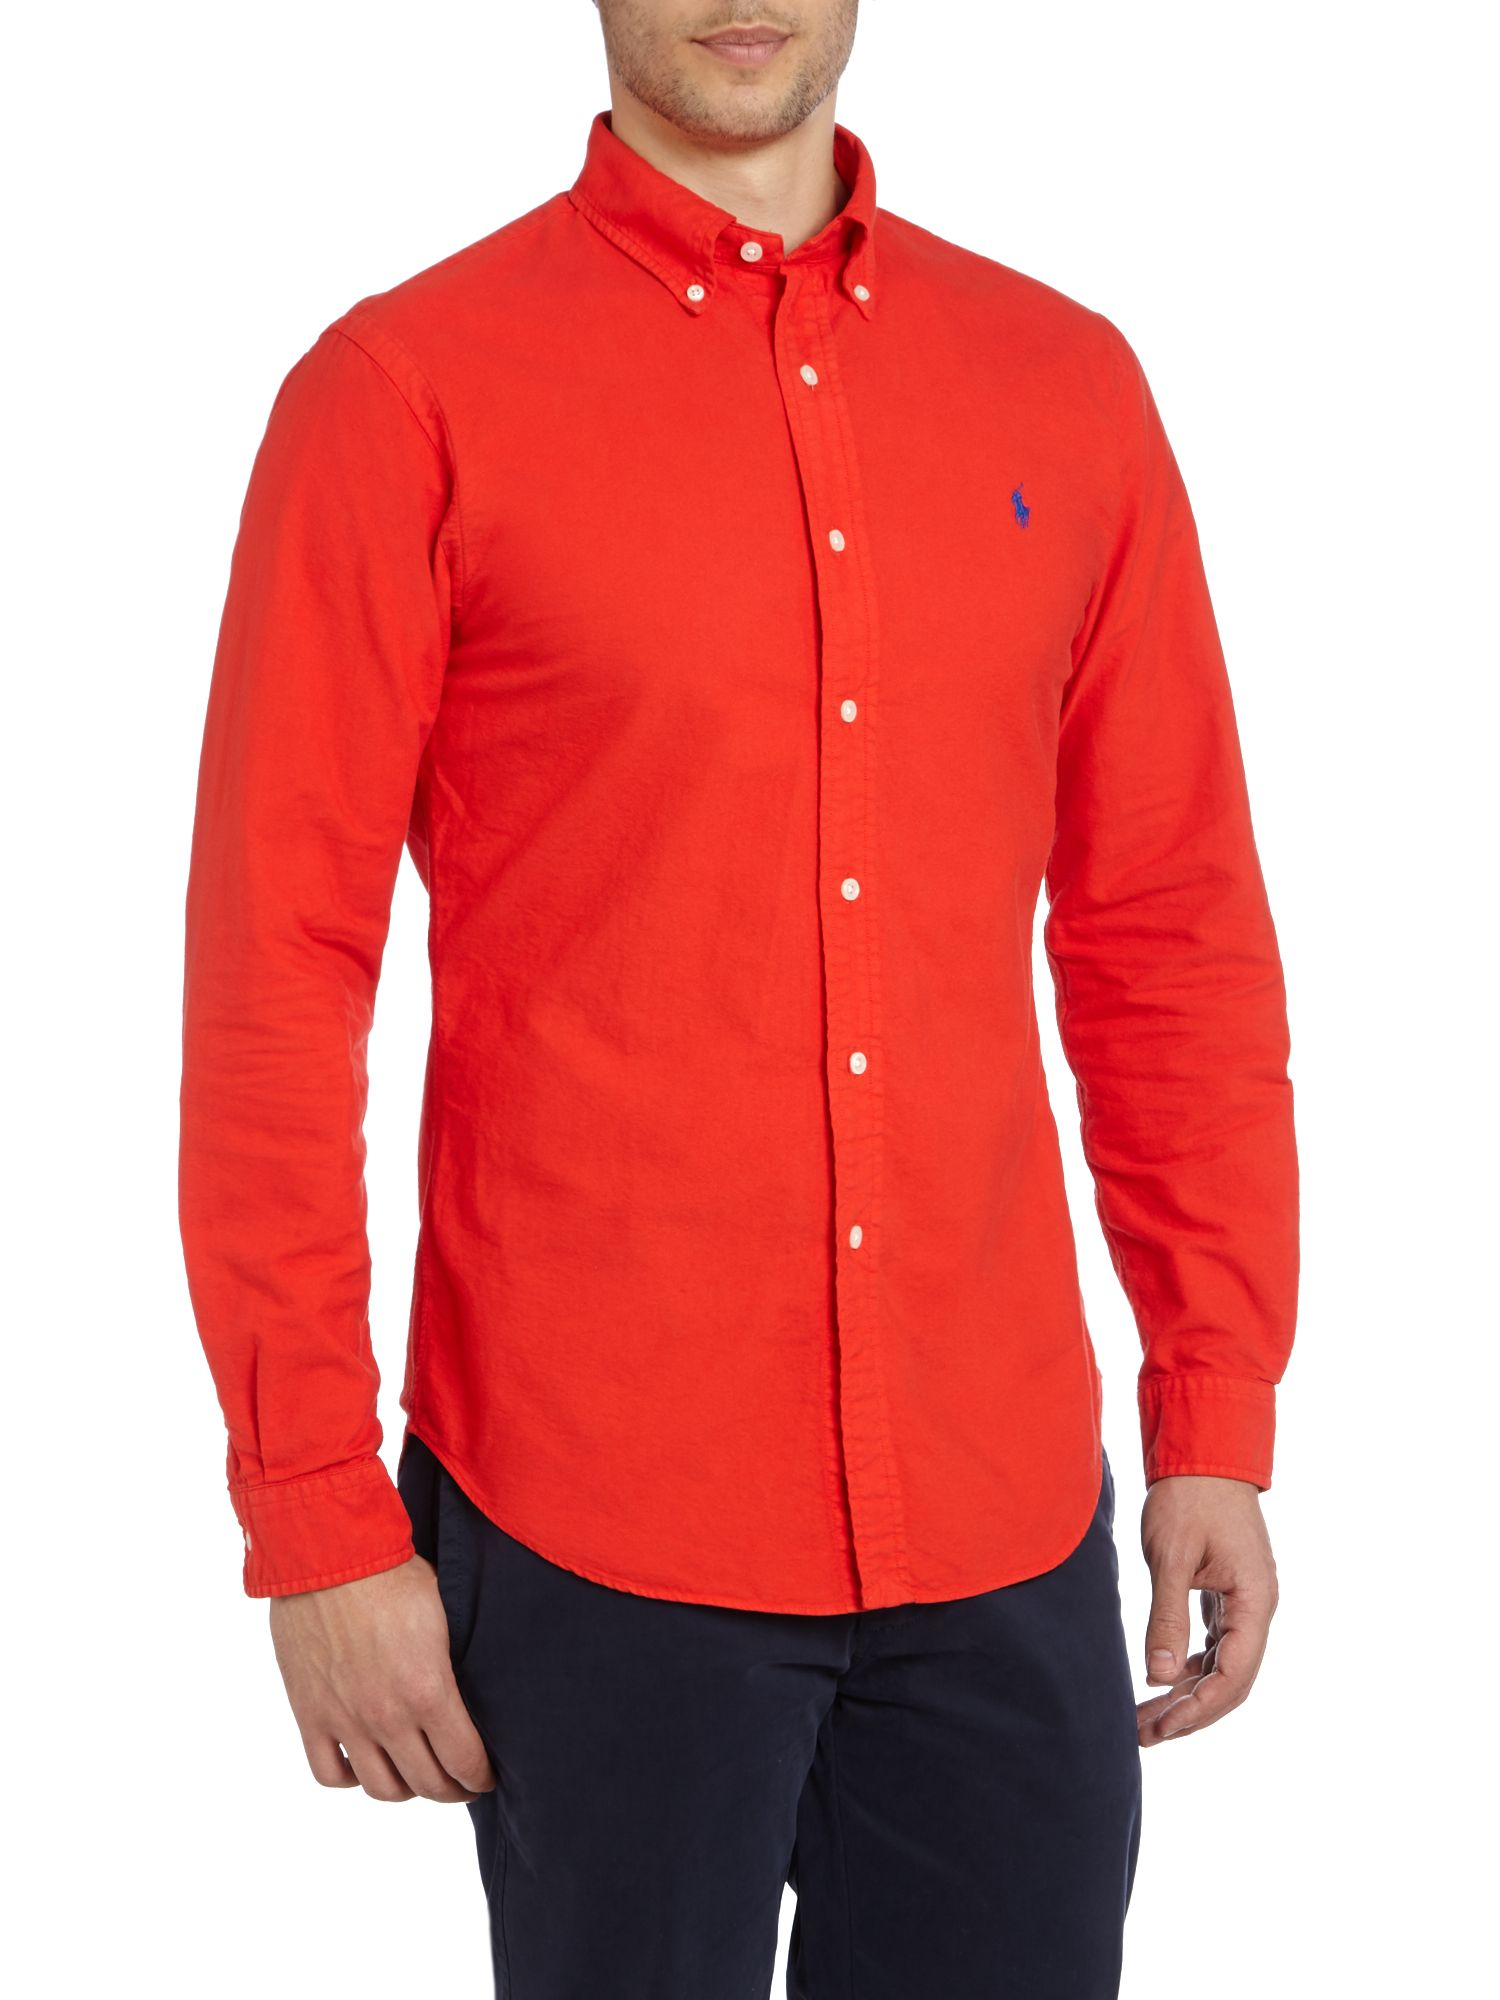 lyst polo ralph lauren ralph lauren oxford slim fit shirt in red for men. Black Bedroom Furniture Sets. Home Design Ideas